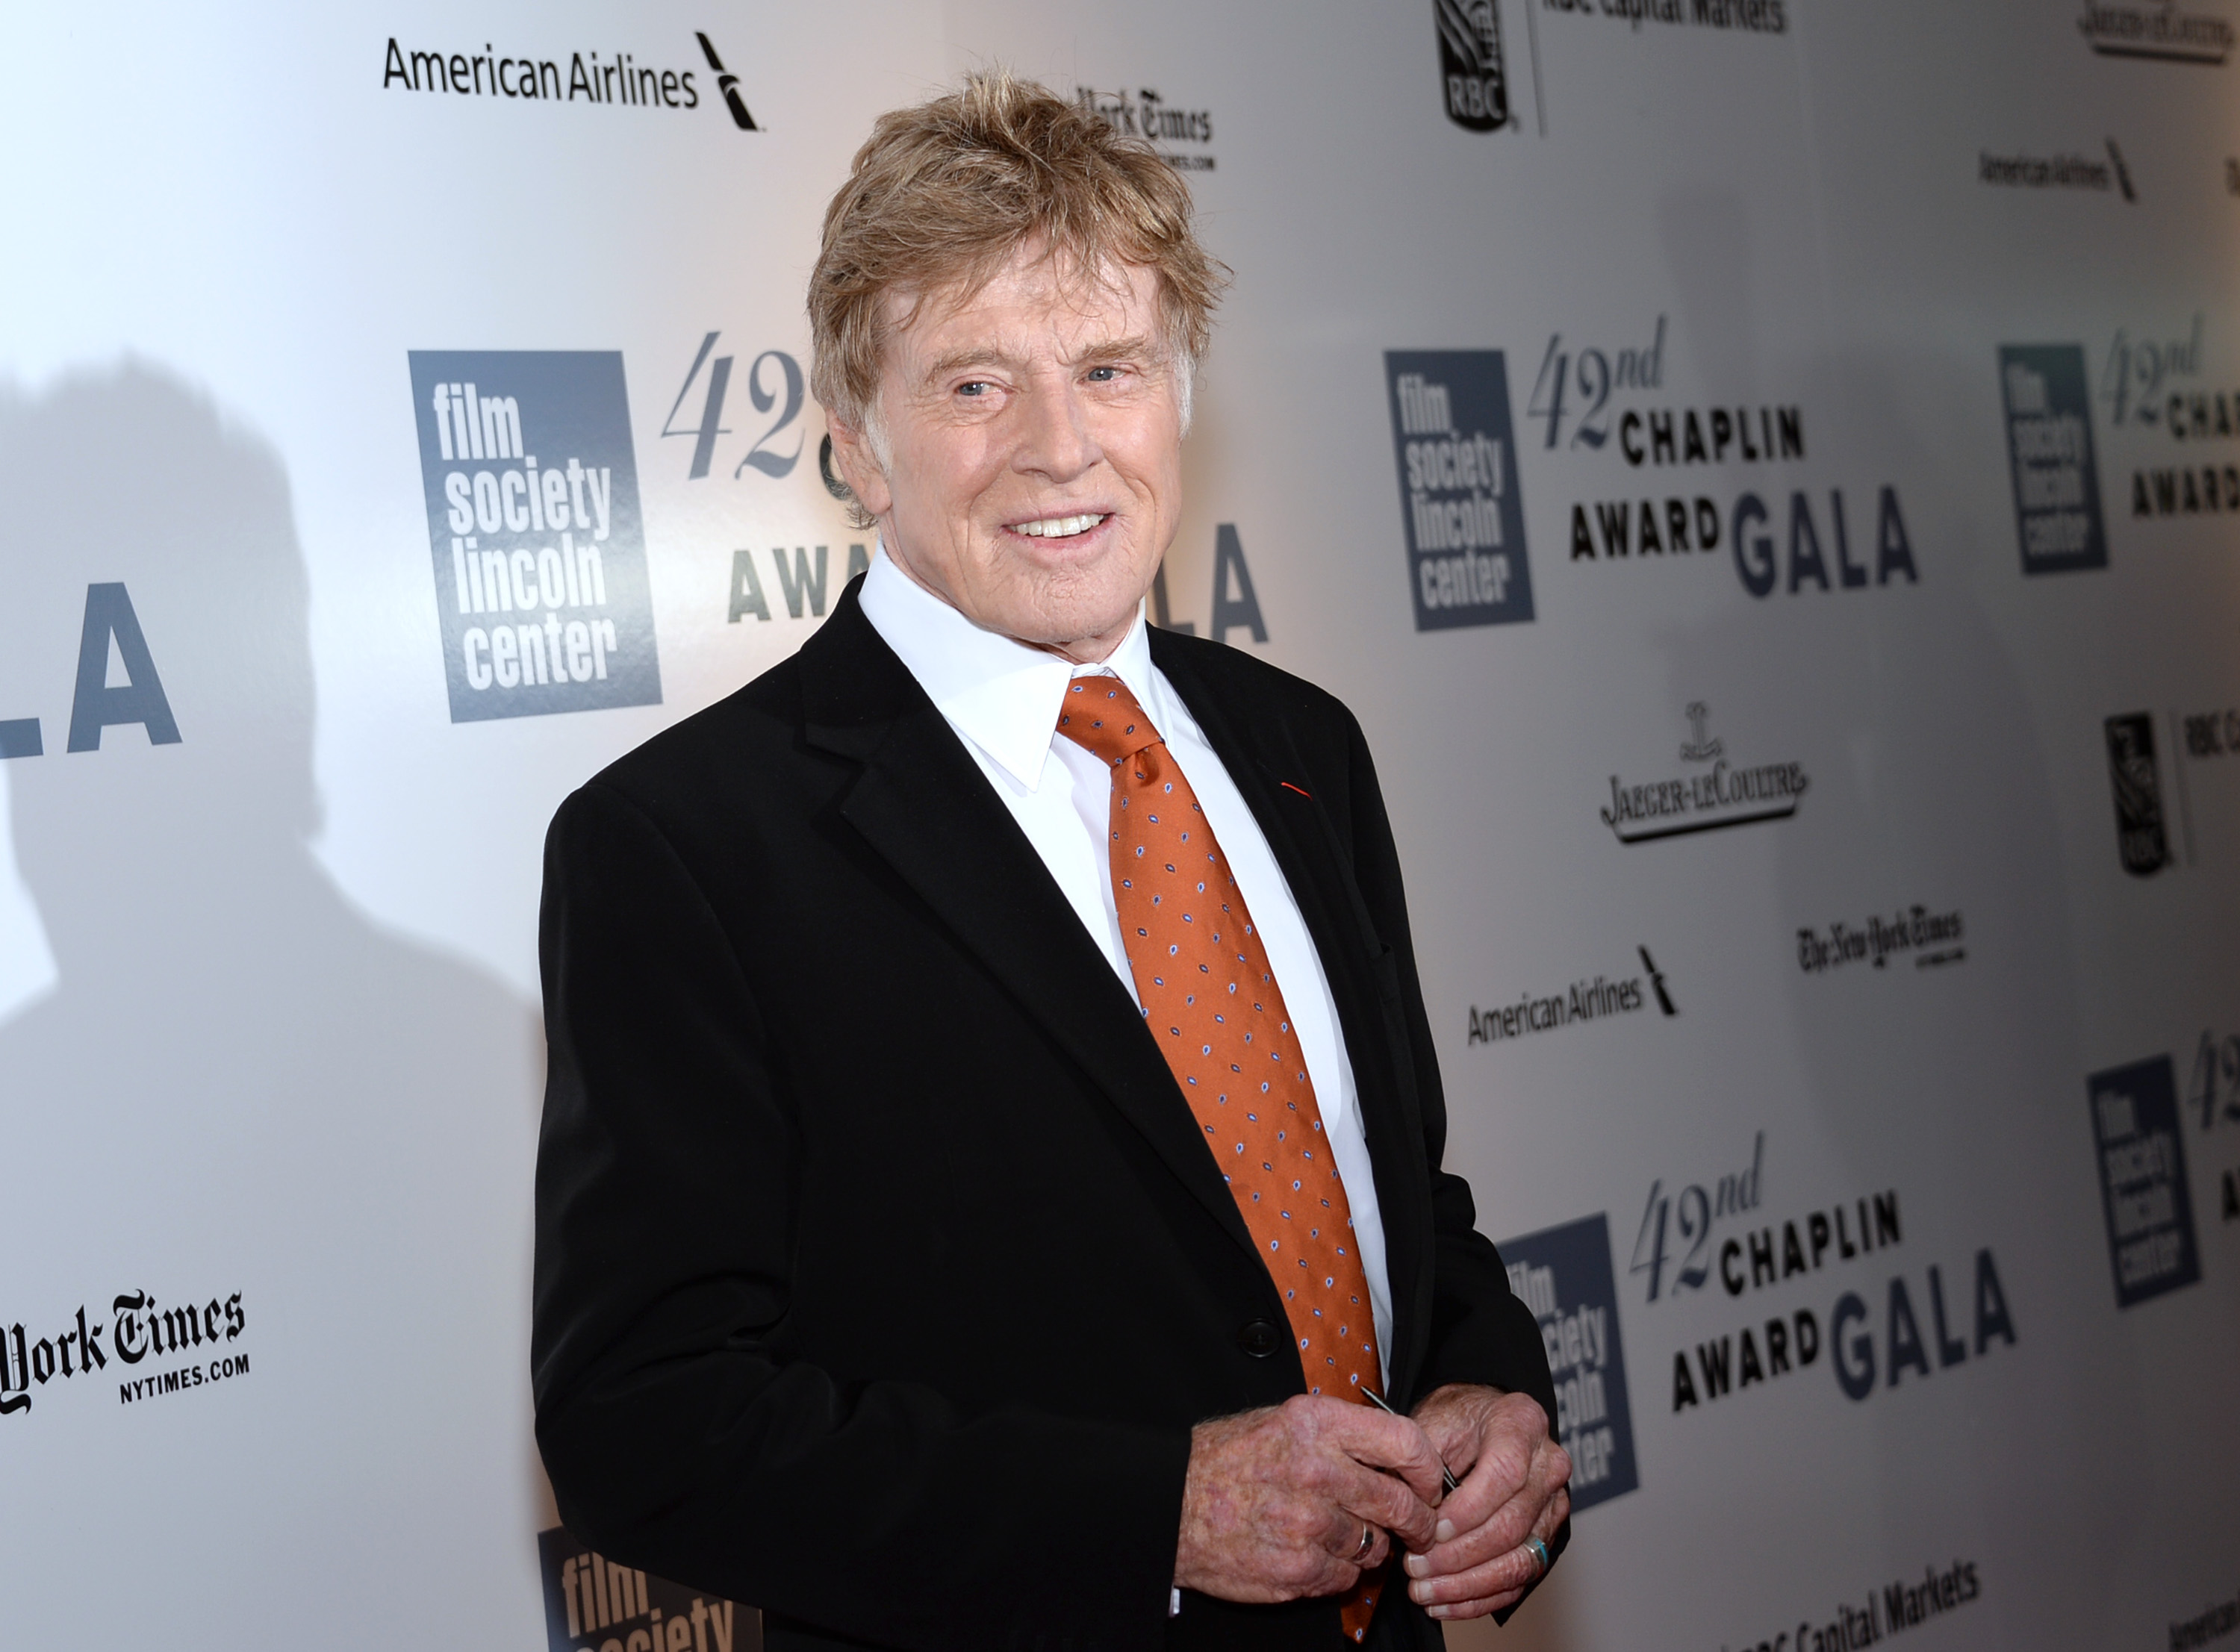 Robert Redford urges global action on climate change